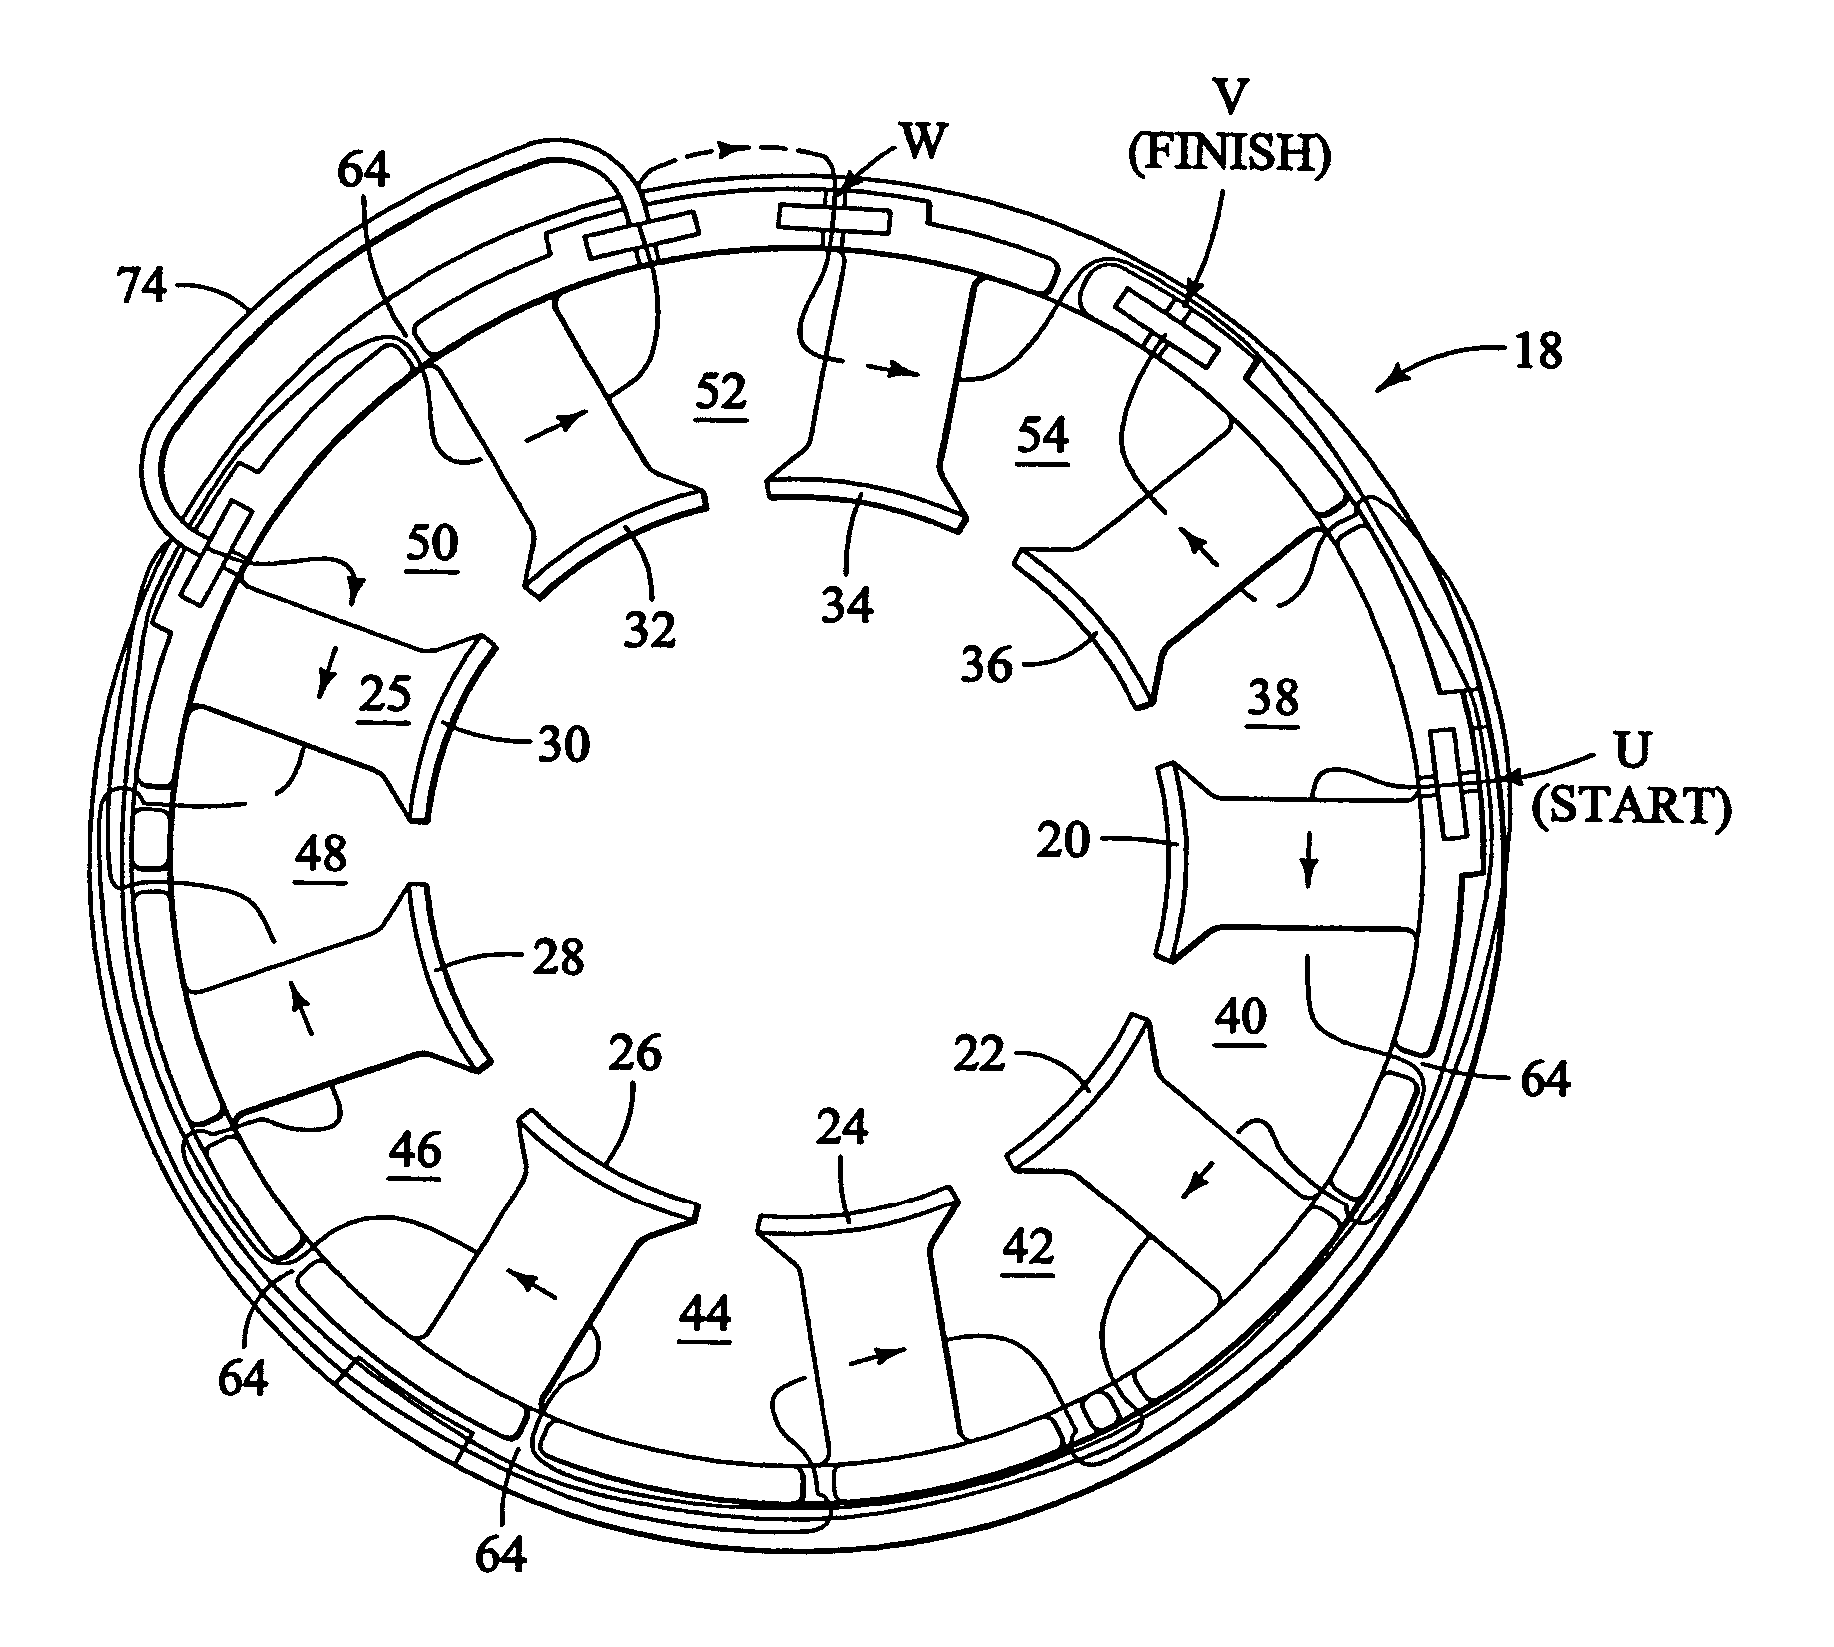 US07152301 20061226 D00000 patent us7152301 method for winding a stator of multi phase 3 phase motor winding diagrams at nearapp.co